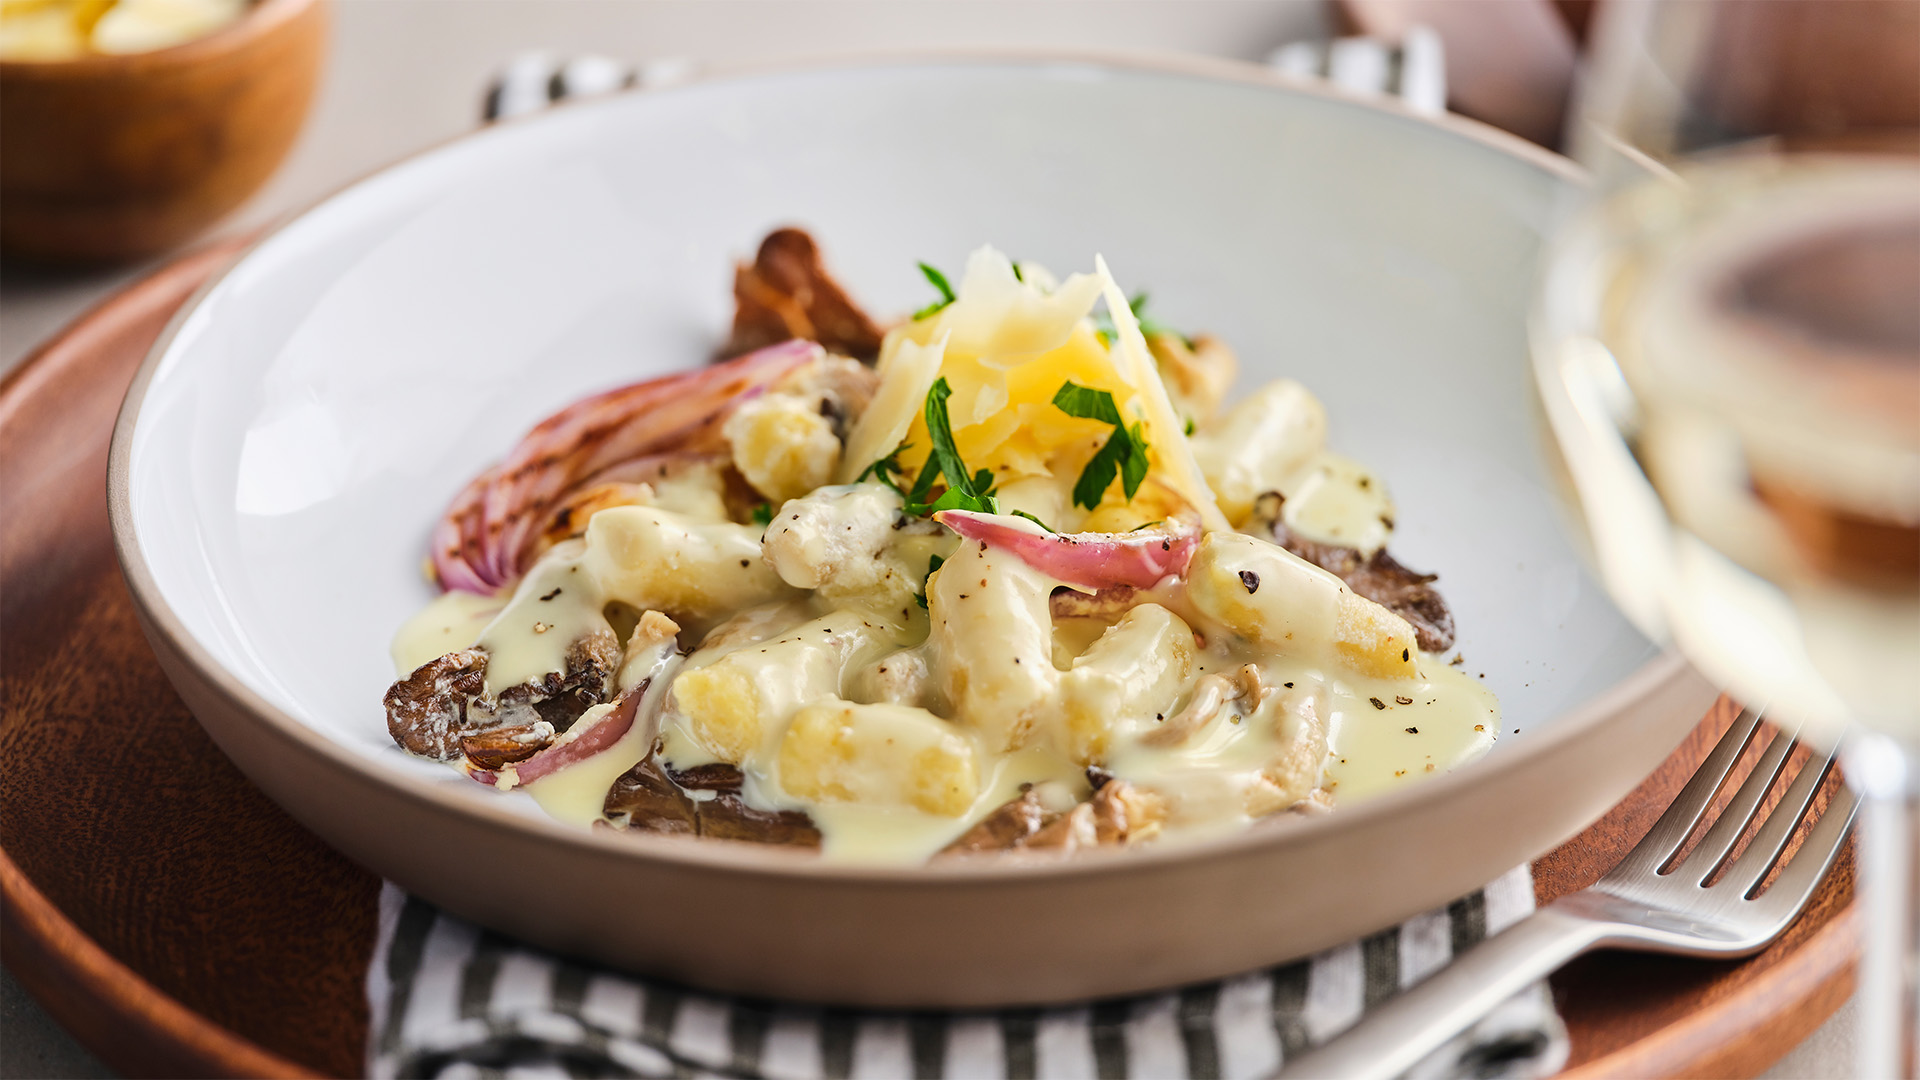 A white and beige earthenware bowl is filled with Parisienne Gnocchi with Ontario cheddar, fresh herbs, grilled mushroom and onion in a Chardonnay cream sauce.